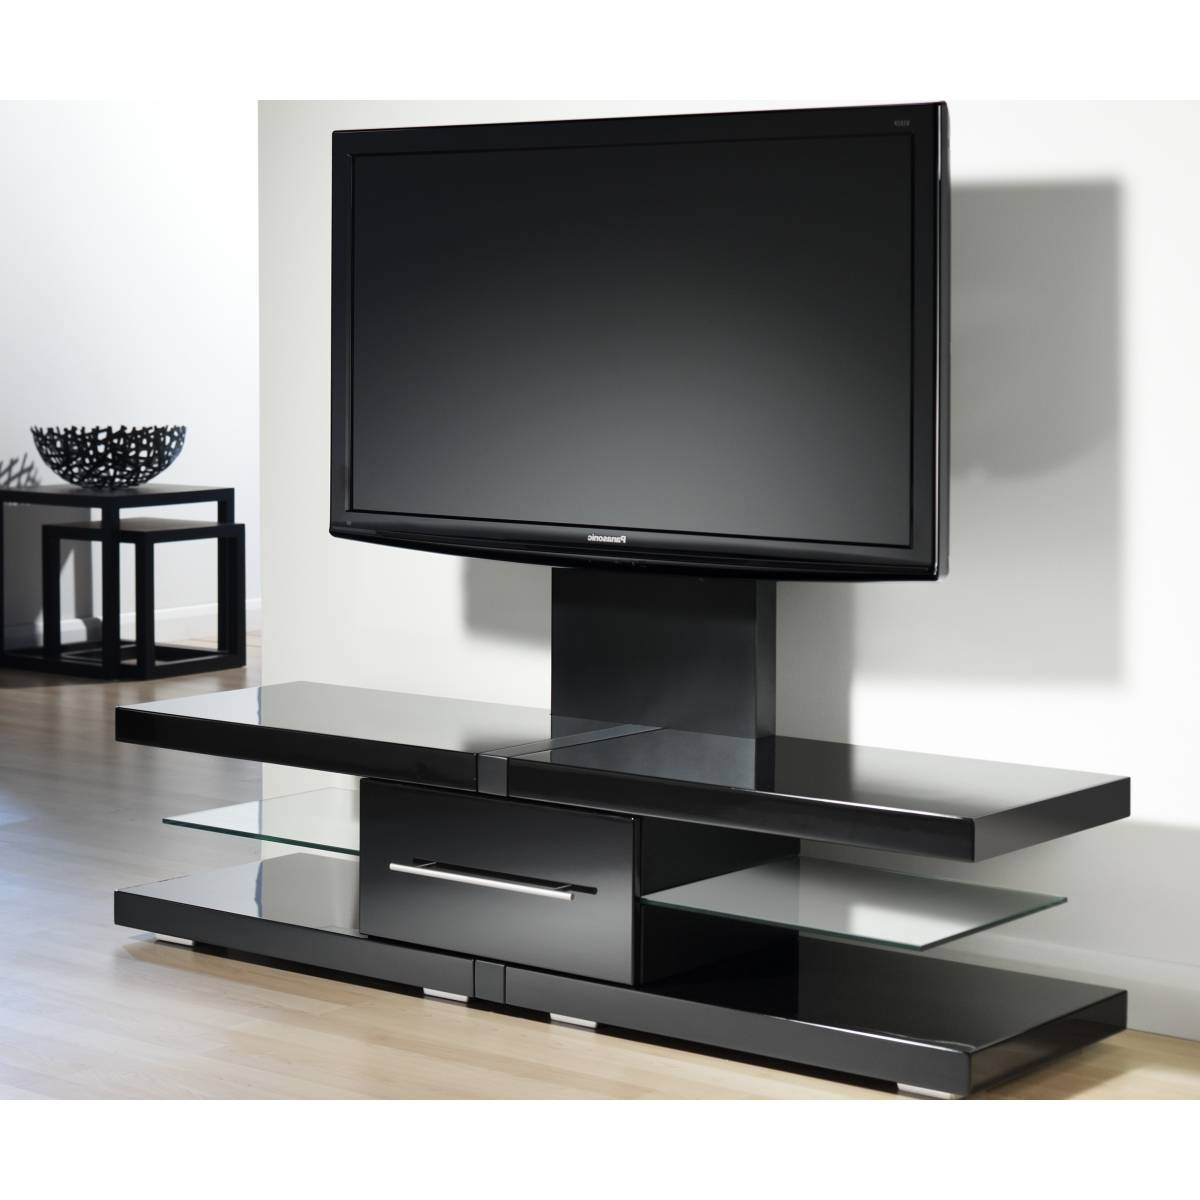 Modern Tv Stands For 60 Inch Tvs Throughout Popular Plateau Newport 62 Inch Corner Tv Stand In Black Walmart Pertaining (View 11 of 20)